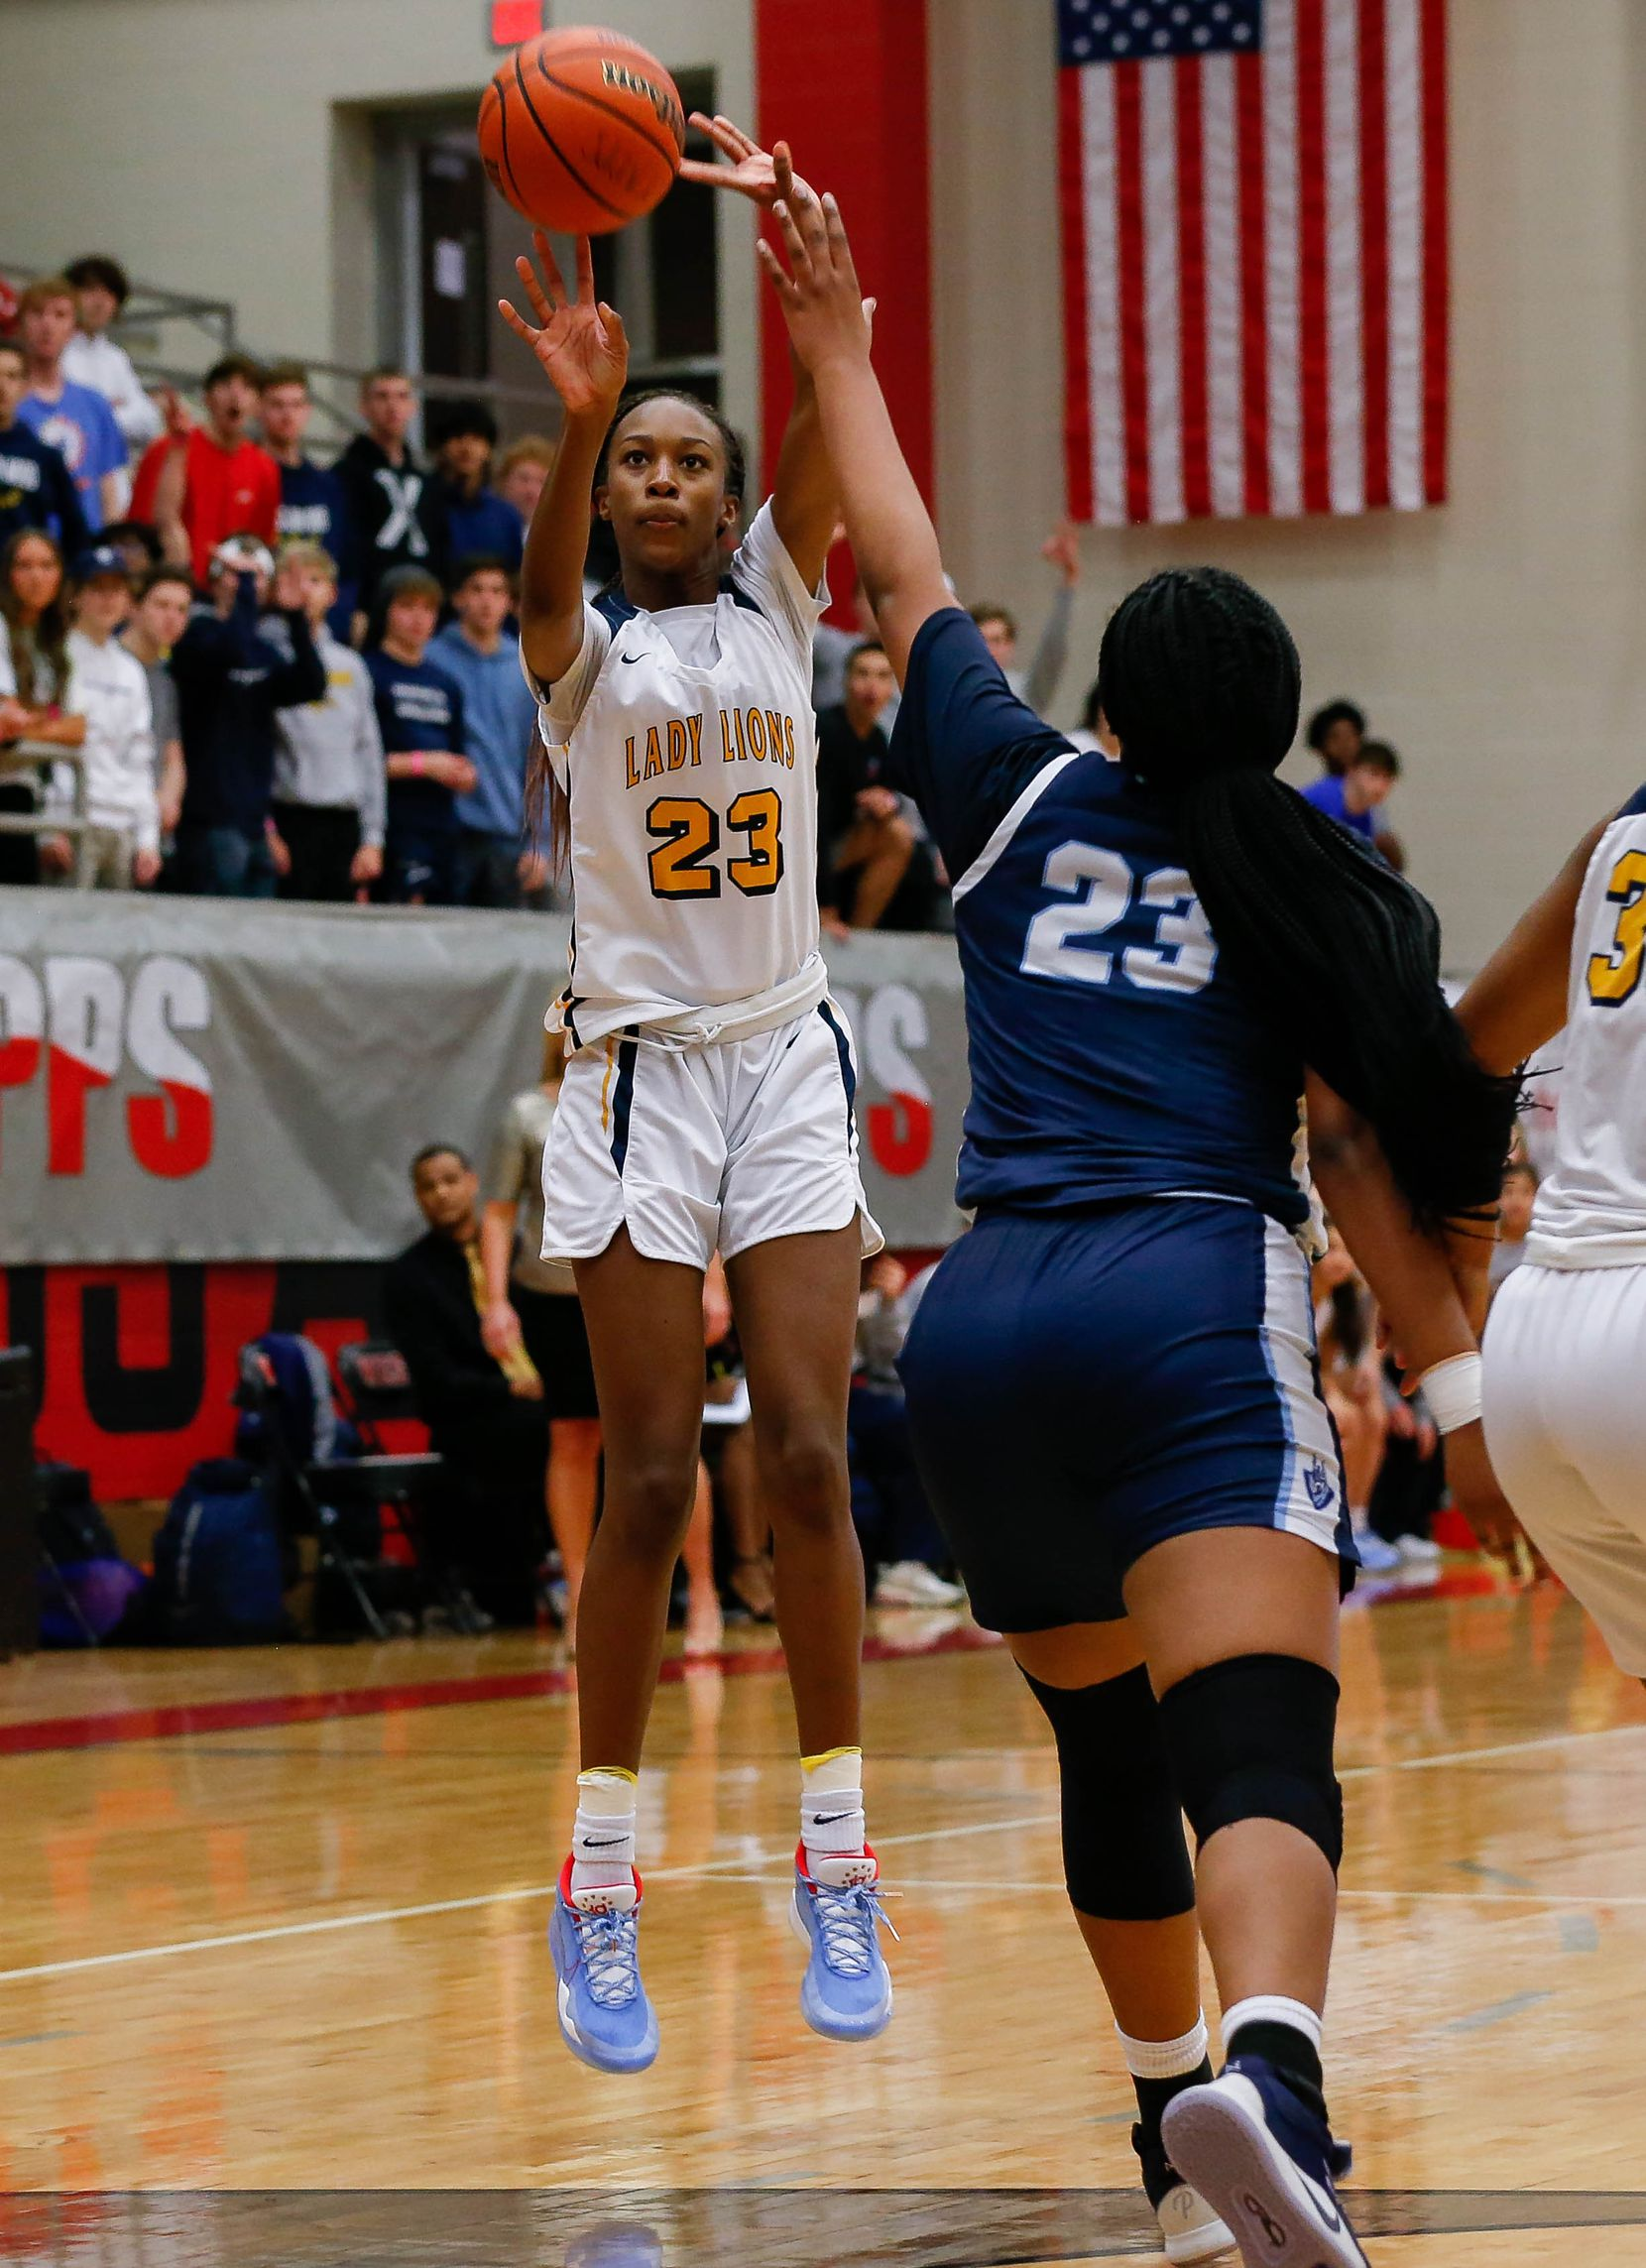 Plano Prestonwood Christian's Kiersten Johnson (23) shoots during the first half of a TAPPS Class 6A girls basketball state championship game against the Village School on Feb. 28, 2020 in West. Prestonwood lost 75-48.